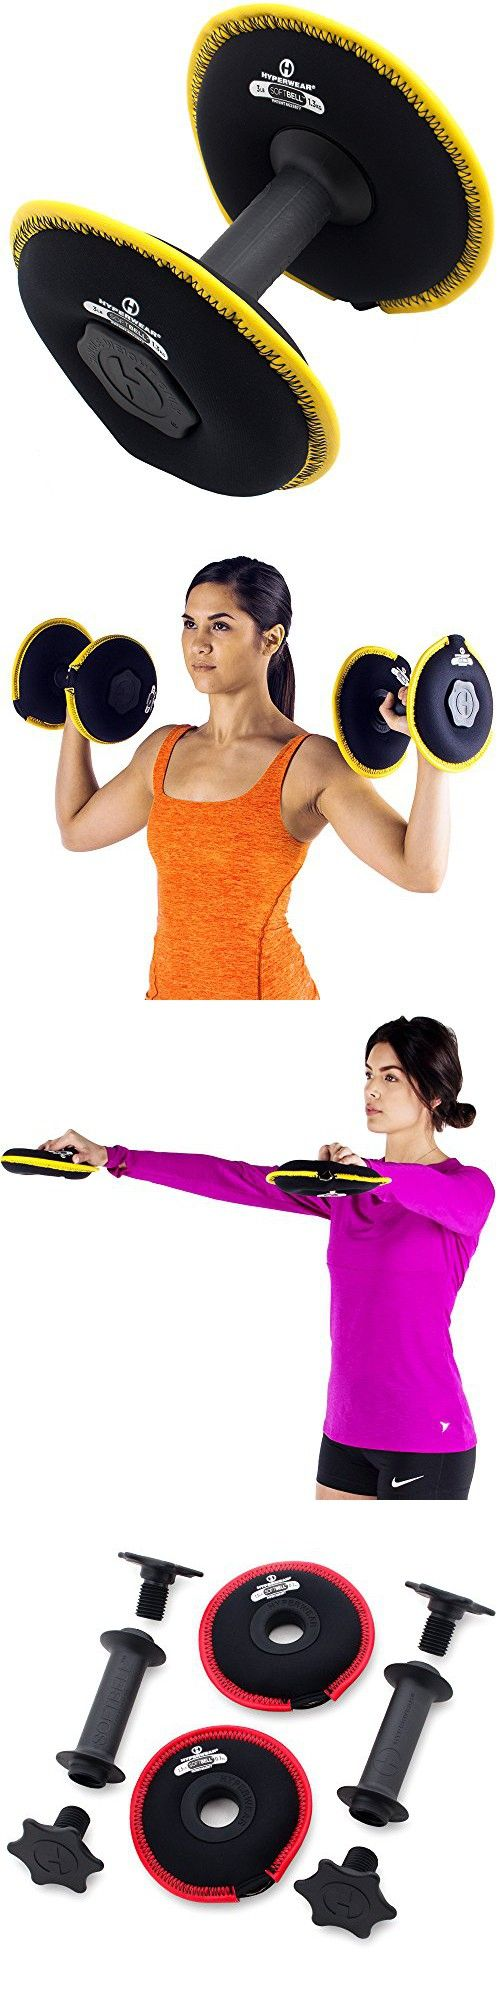 Hyperwear SoftBell 6 lb Single 3-in-1 Deluxe Adjustable Dumbbell One Easy Grip Handle and Two 3 lb Yellow Sand Disc Free Weight Plates